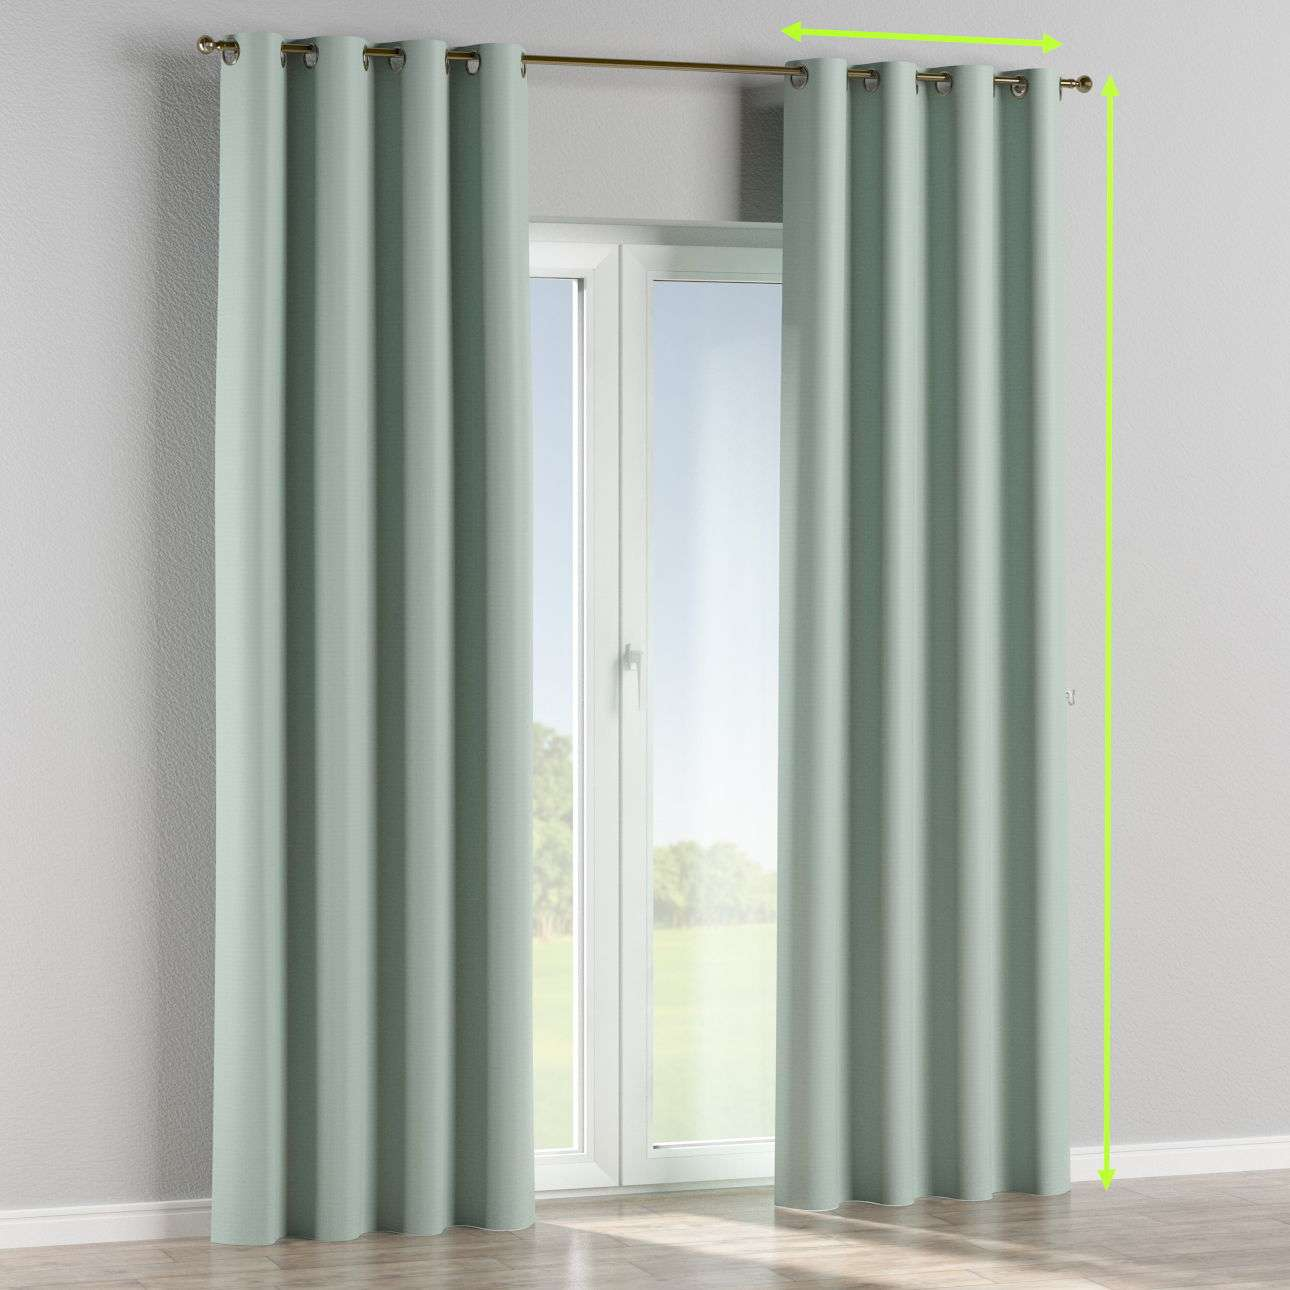 Eyelet curtain in collection Blackout, fabric: 269-61